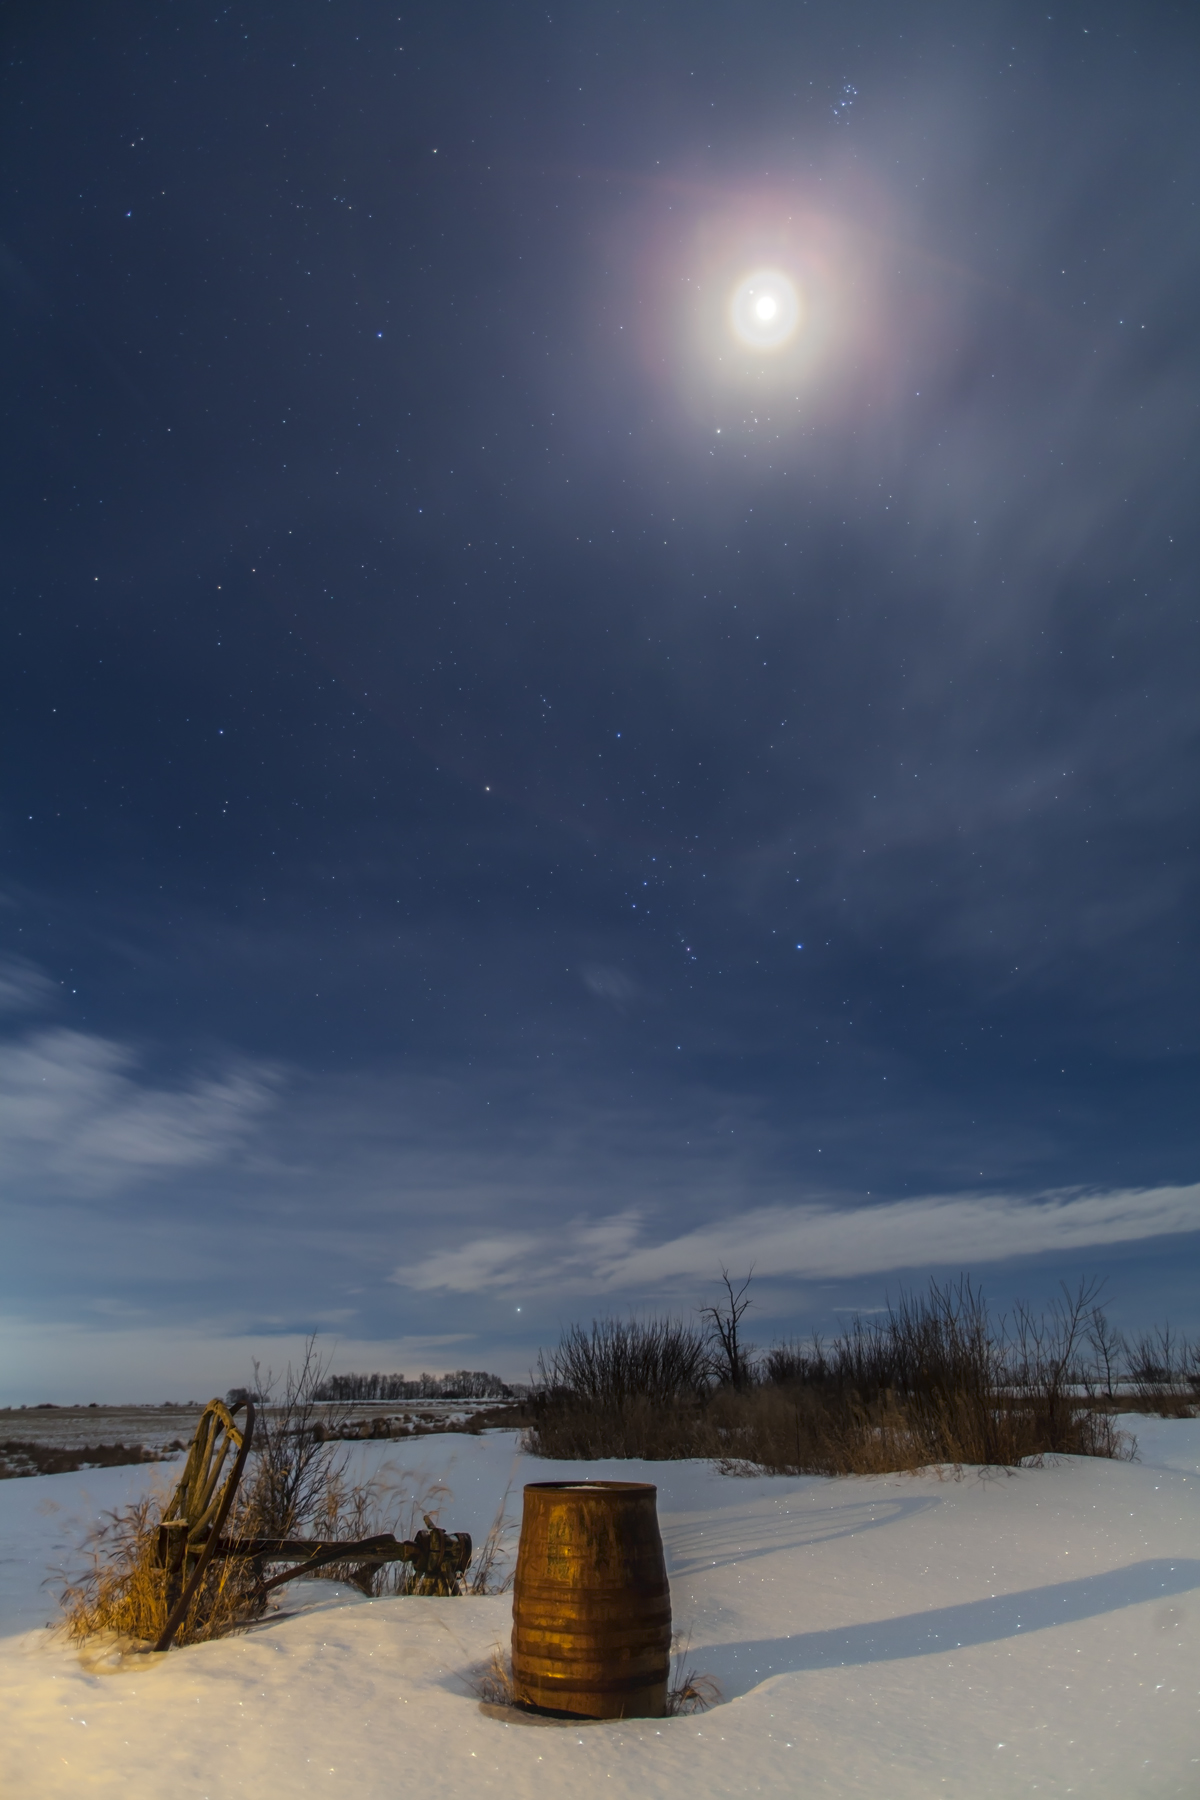 Moon And Jupiter Amid The Winter Stars The Amazing Sky